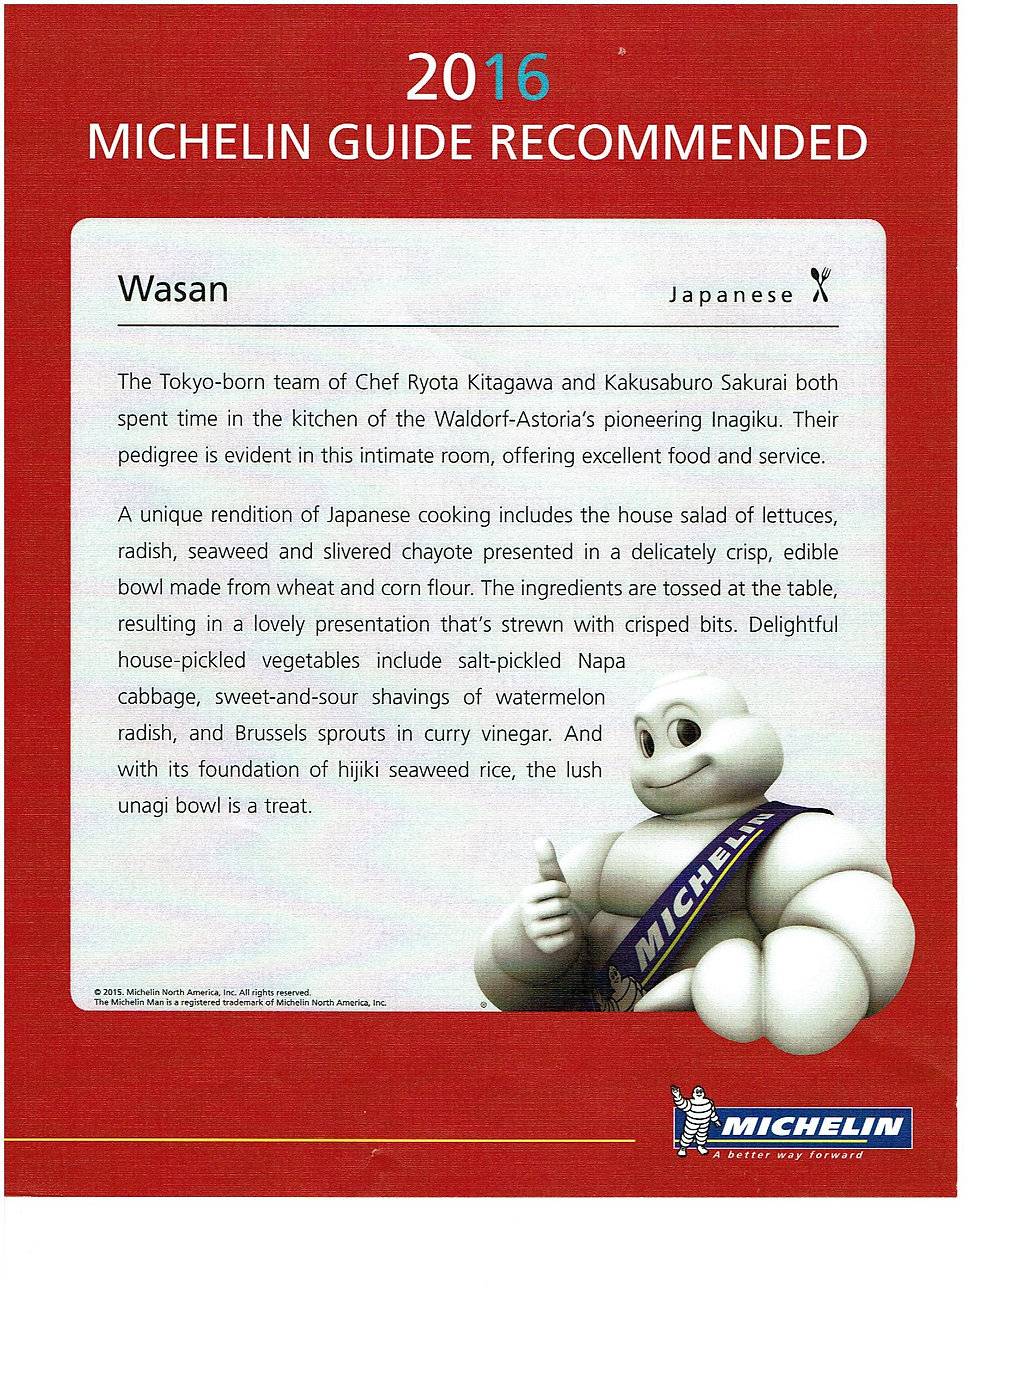 Michelin Recommend 2016.jpg